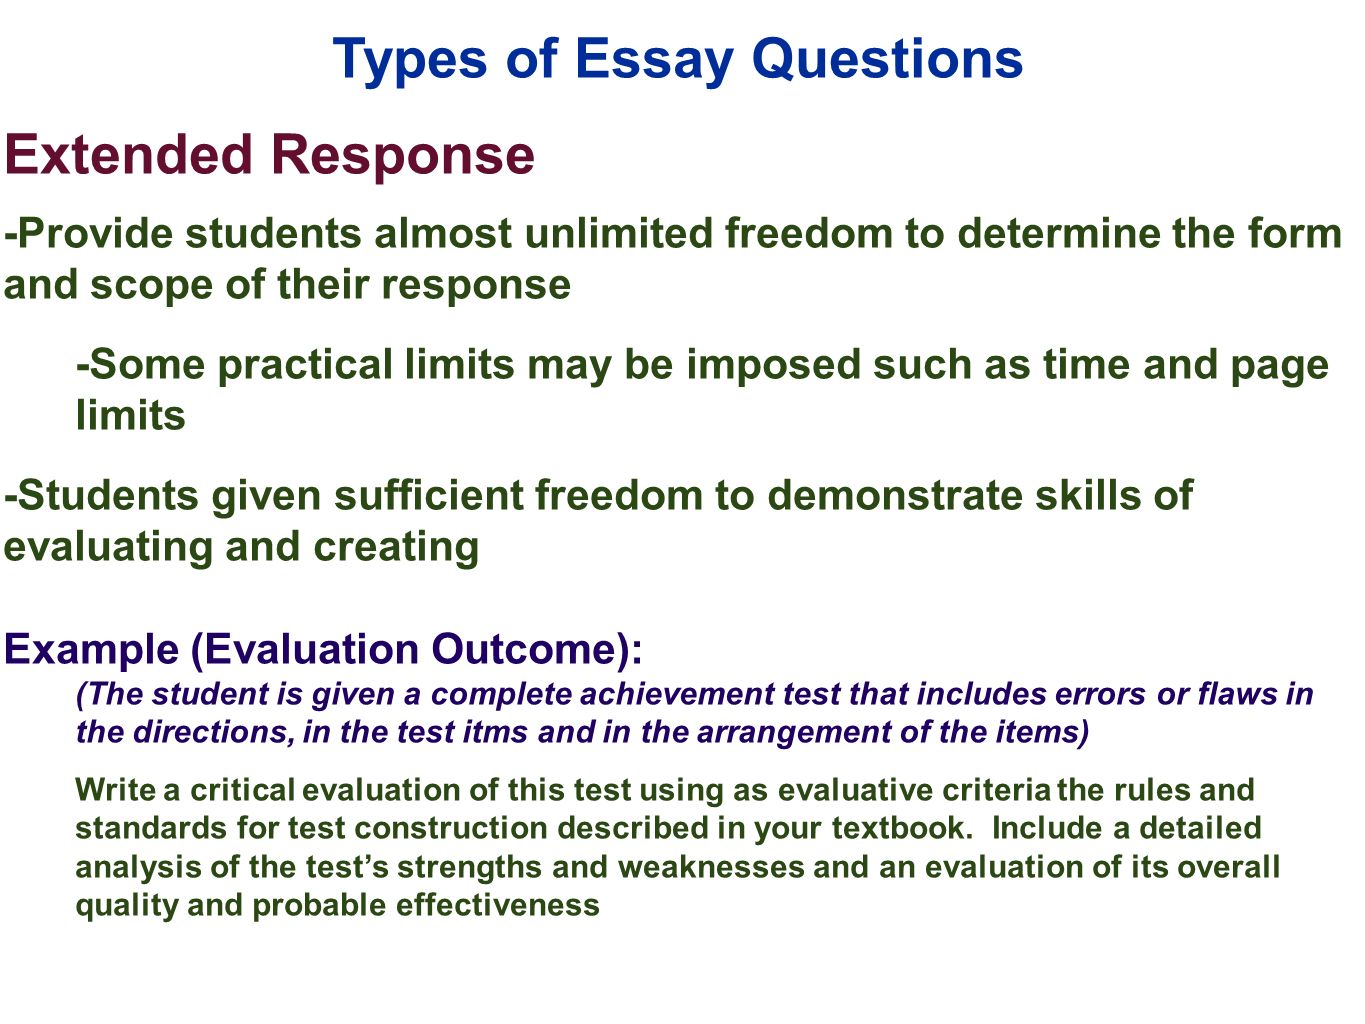 Bad essay question example